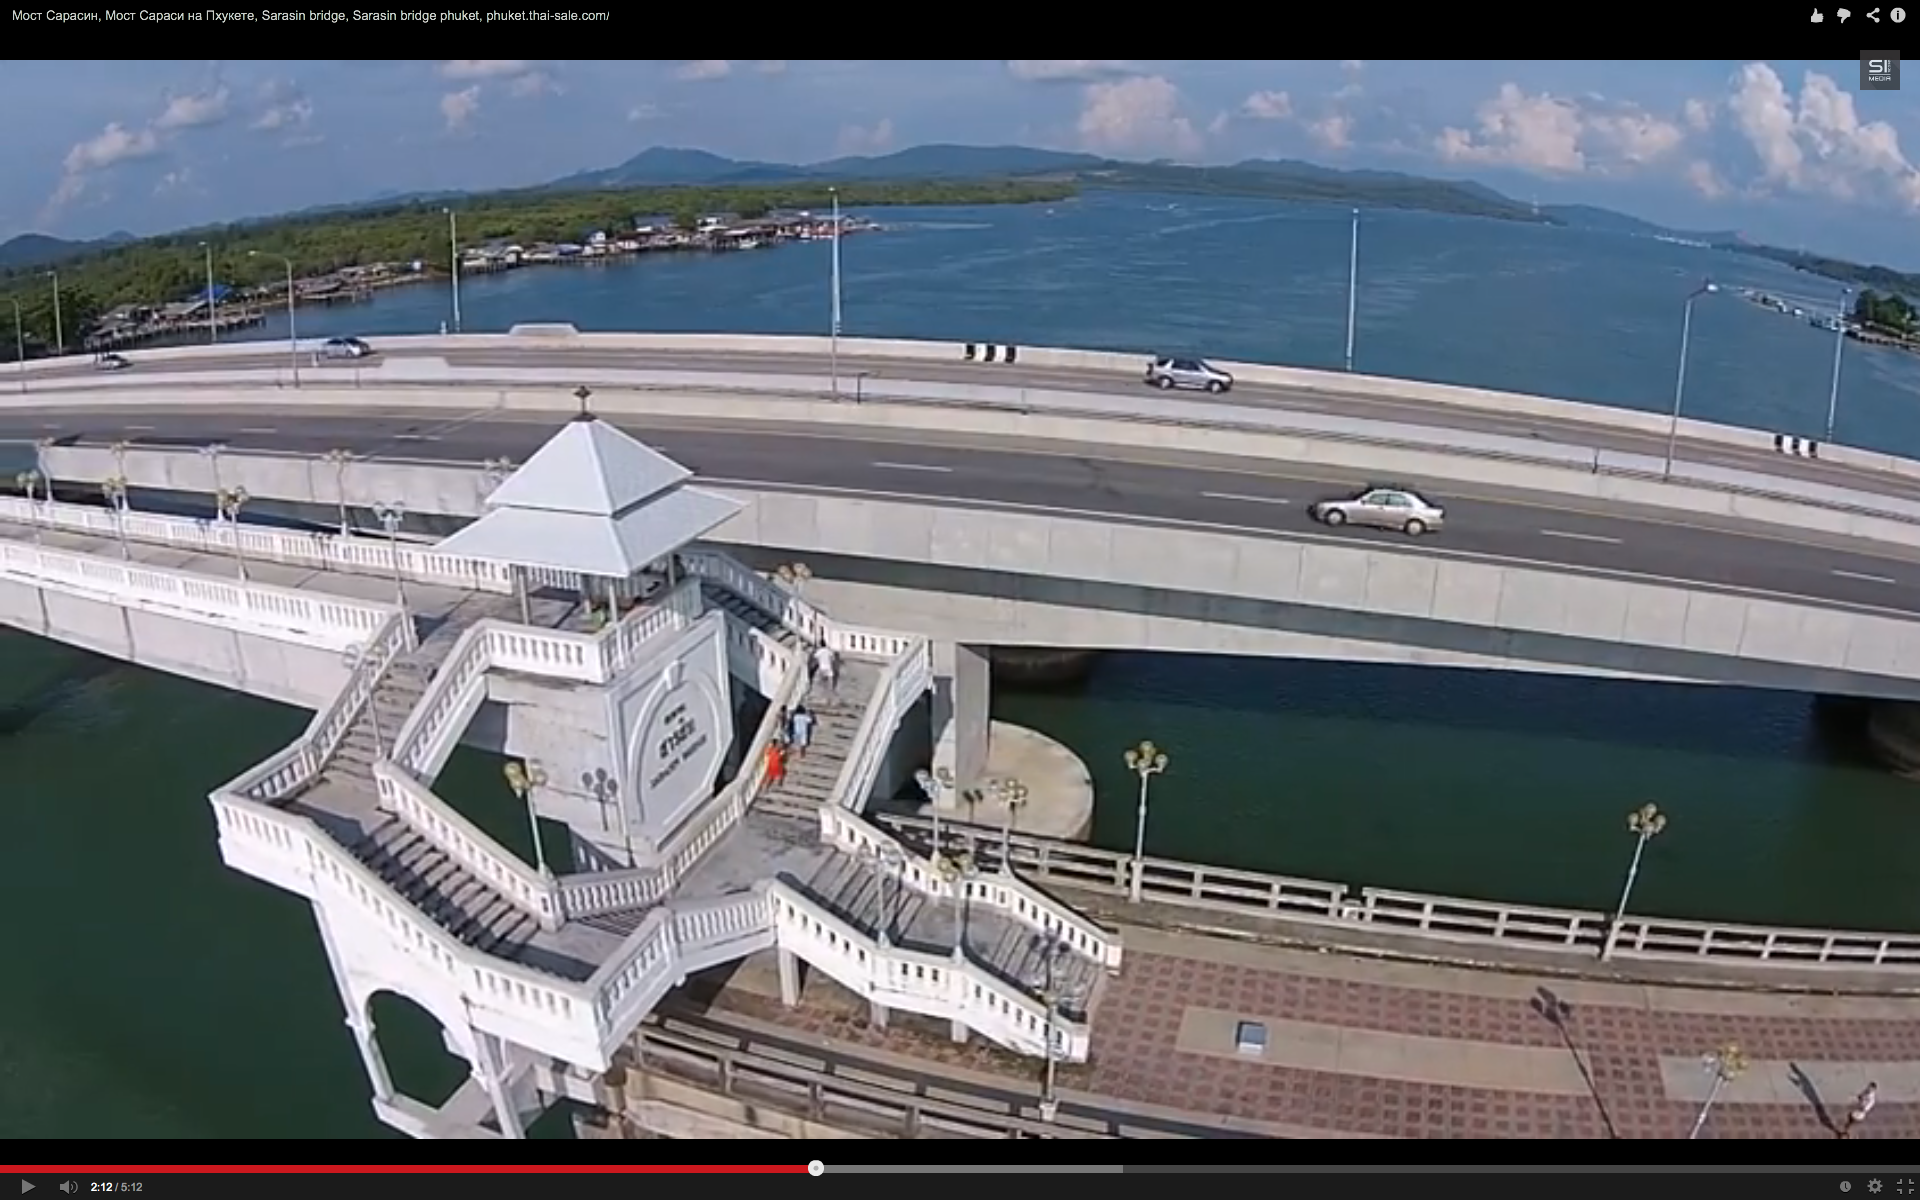 Відэа Мост Сарасин, Мост Сарасин на Пхукет, Sarasin bridge, Sarasin bridge phuket